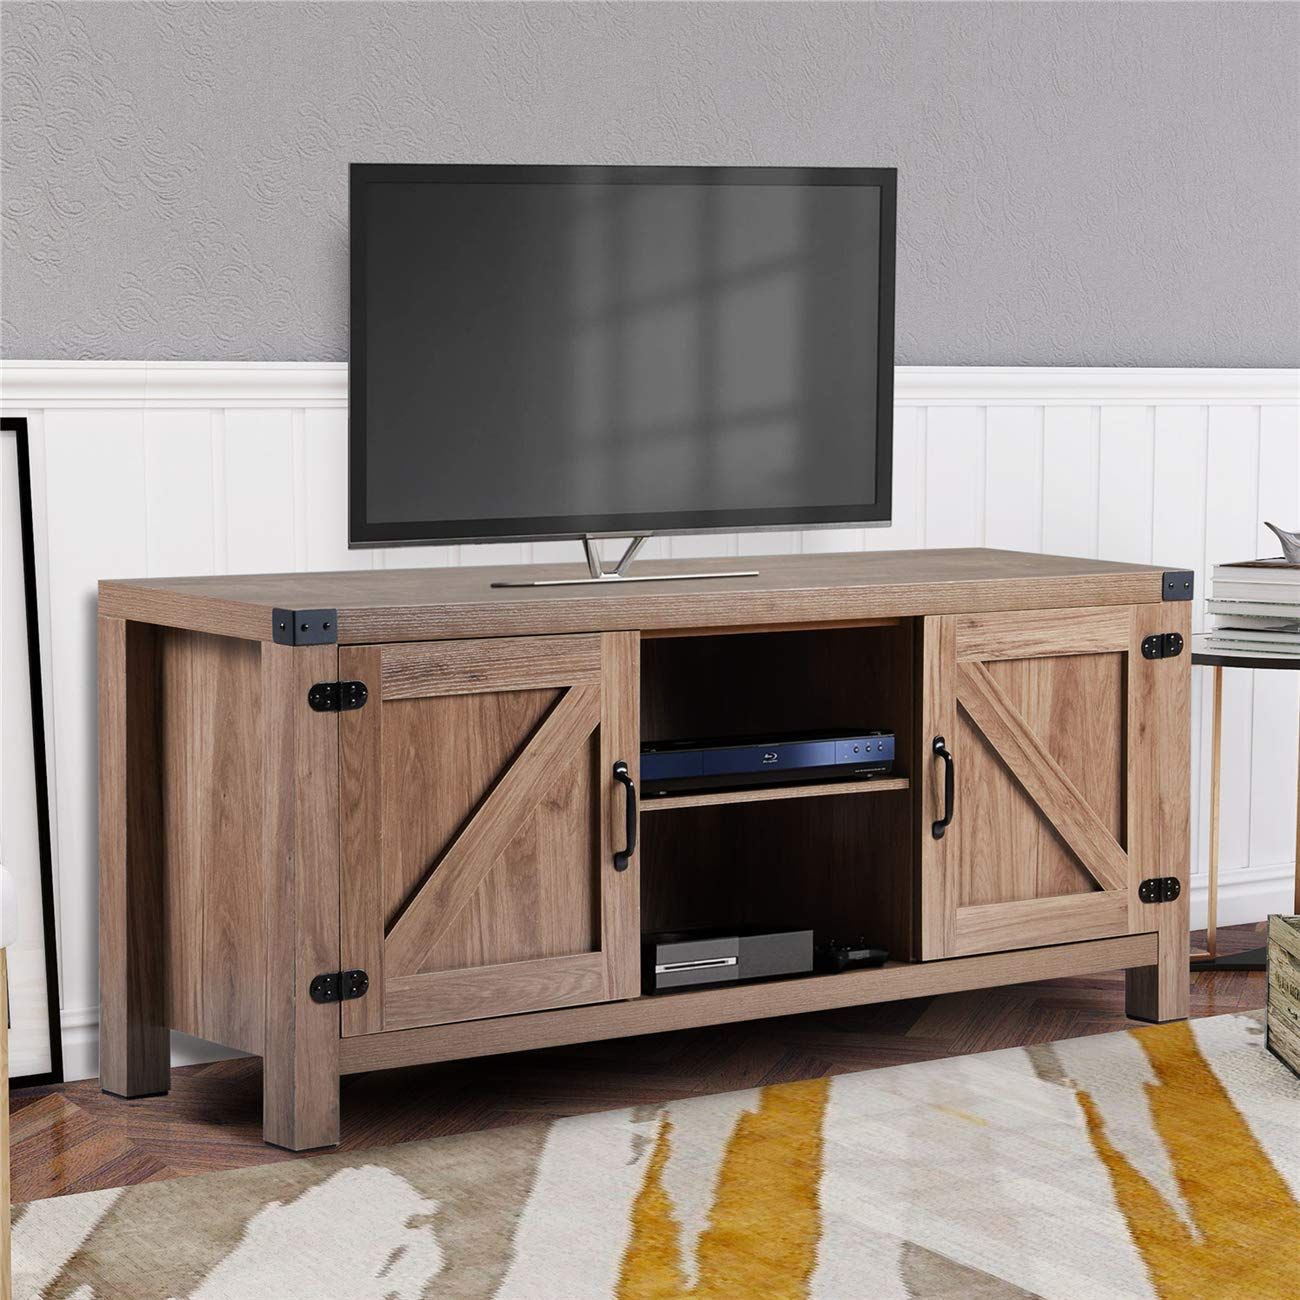 Rustic Style Electric Fireplace TV Stand, Wood Console for Living Room, 58 Inch Wide Entertainment Center for TVs Up to 65 Inch